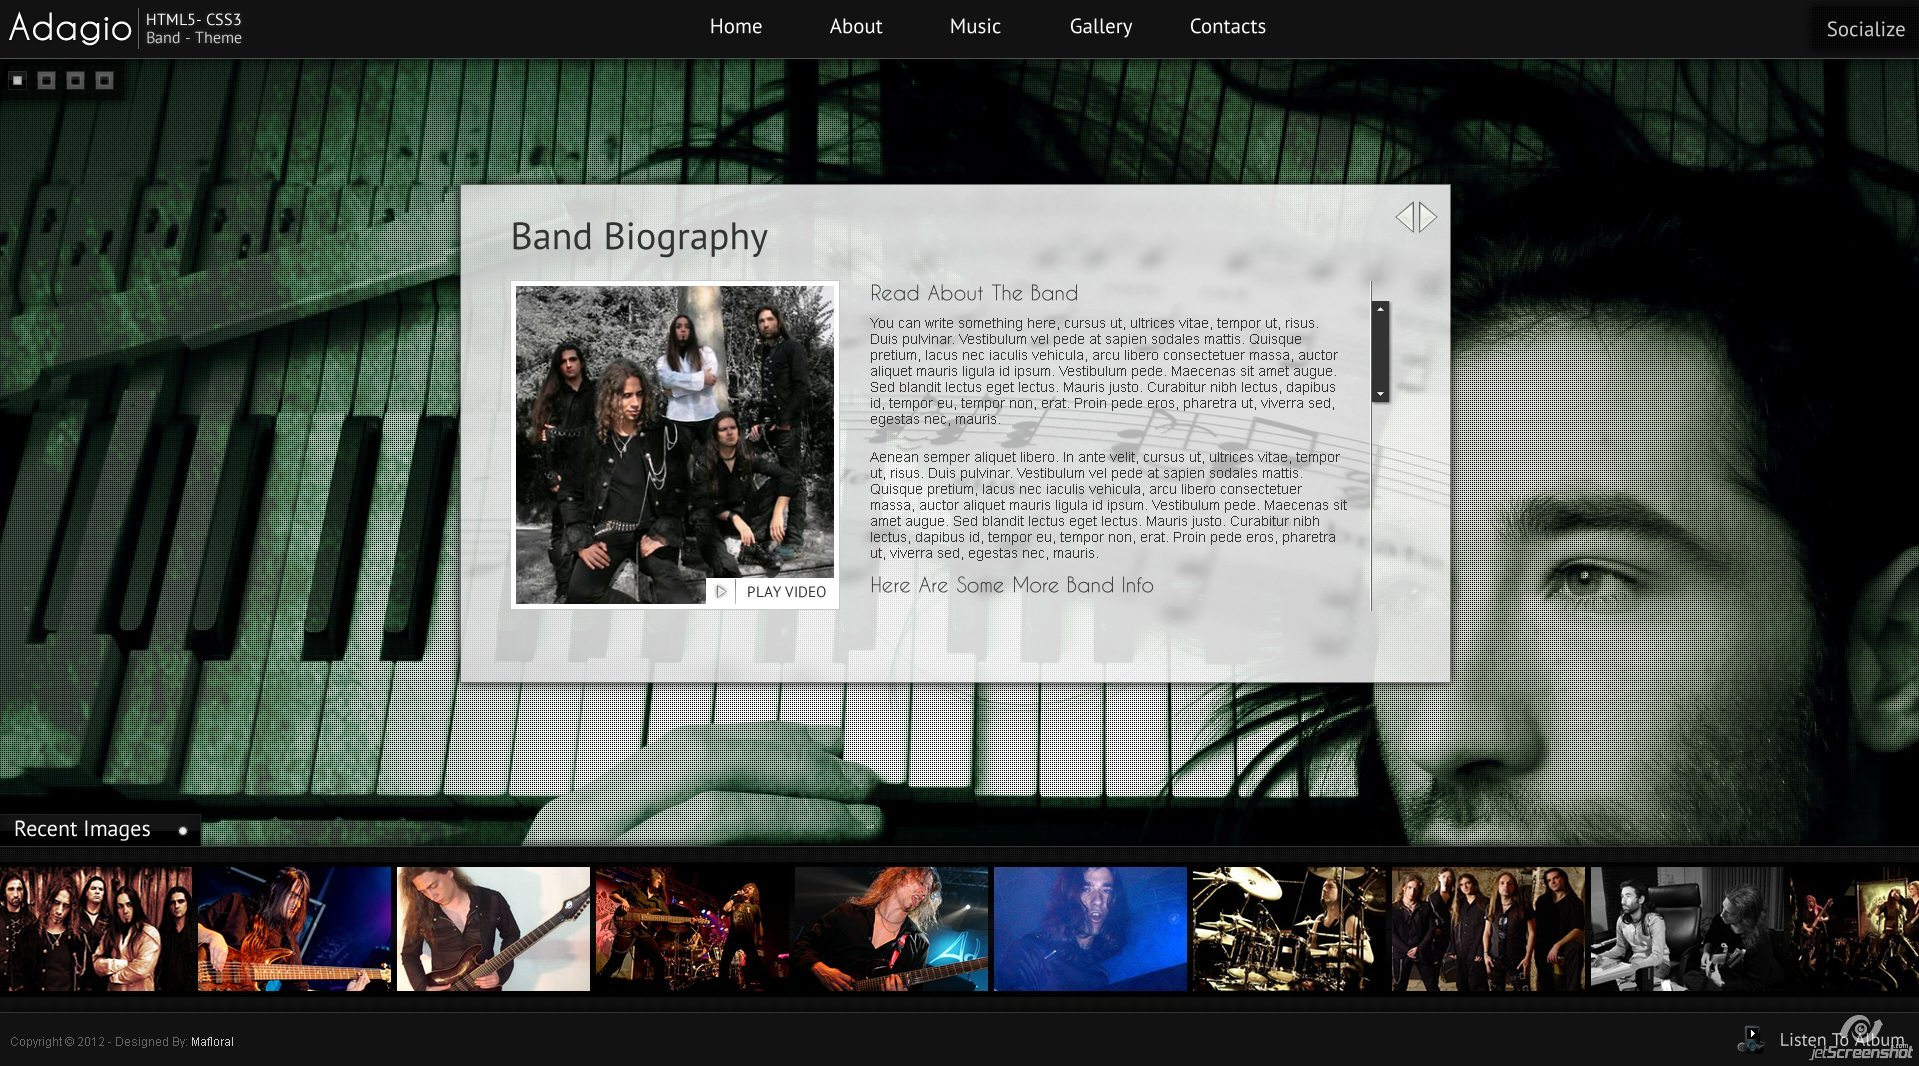 Adagio Musician Template - HTML5 - CSS3 - Bio Page